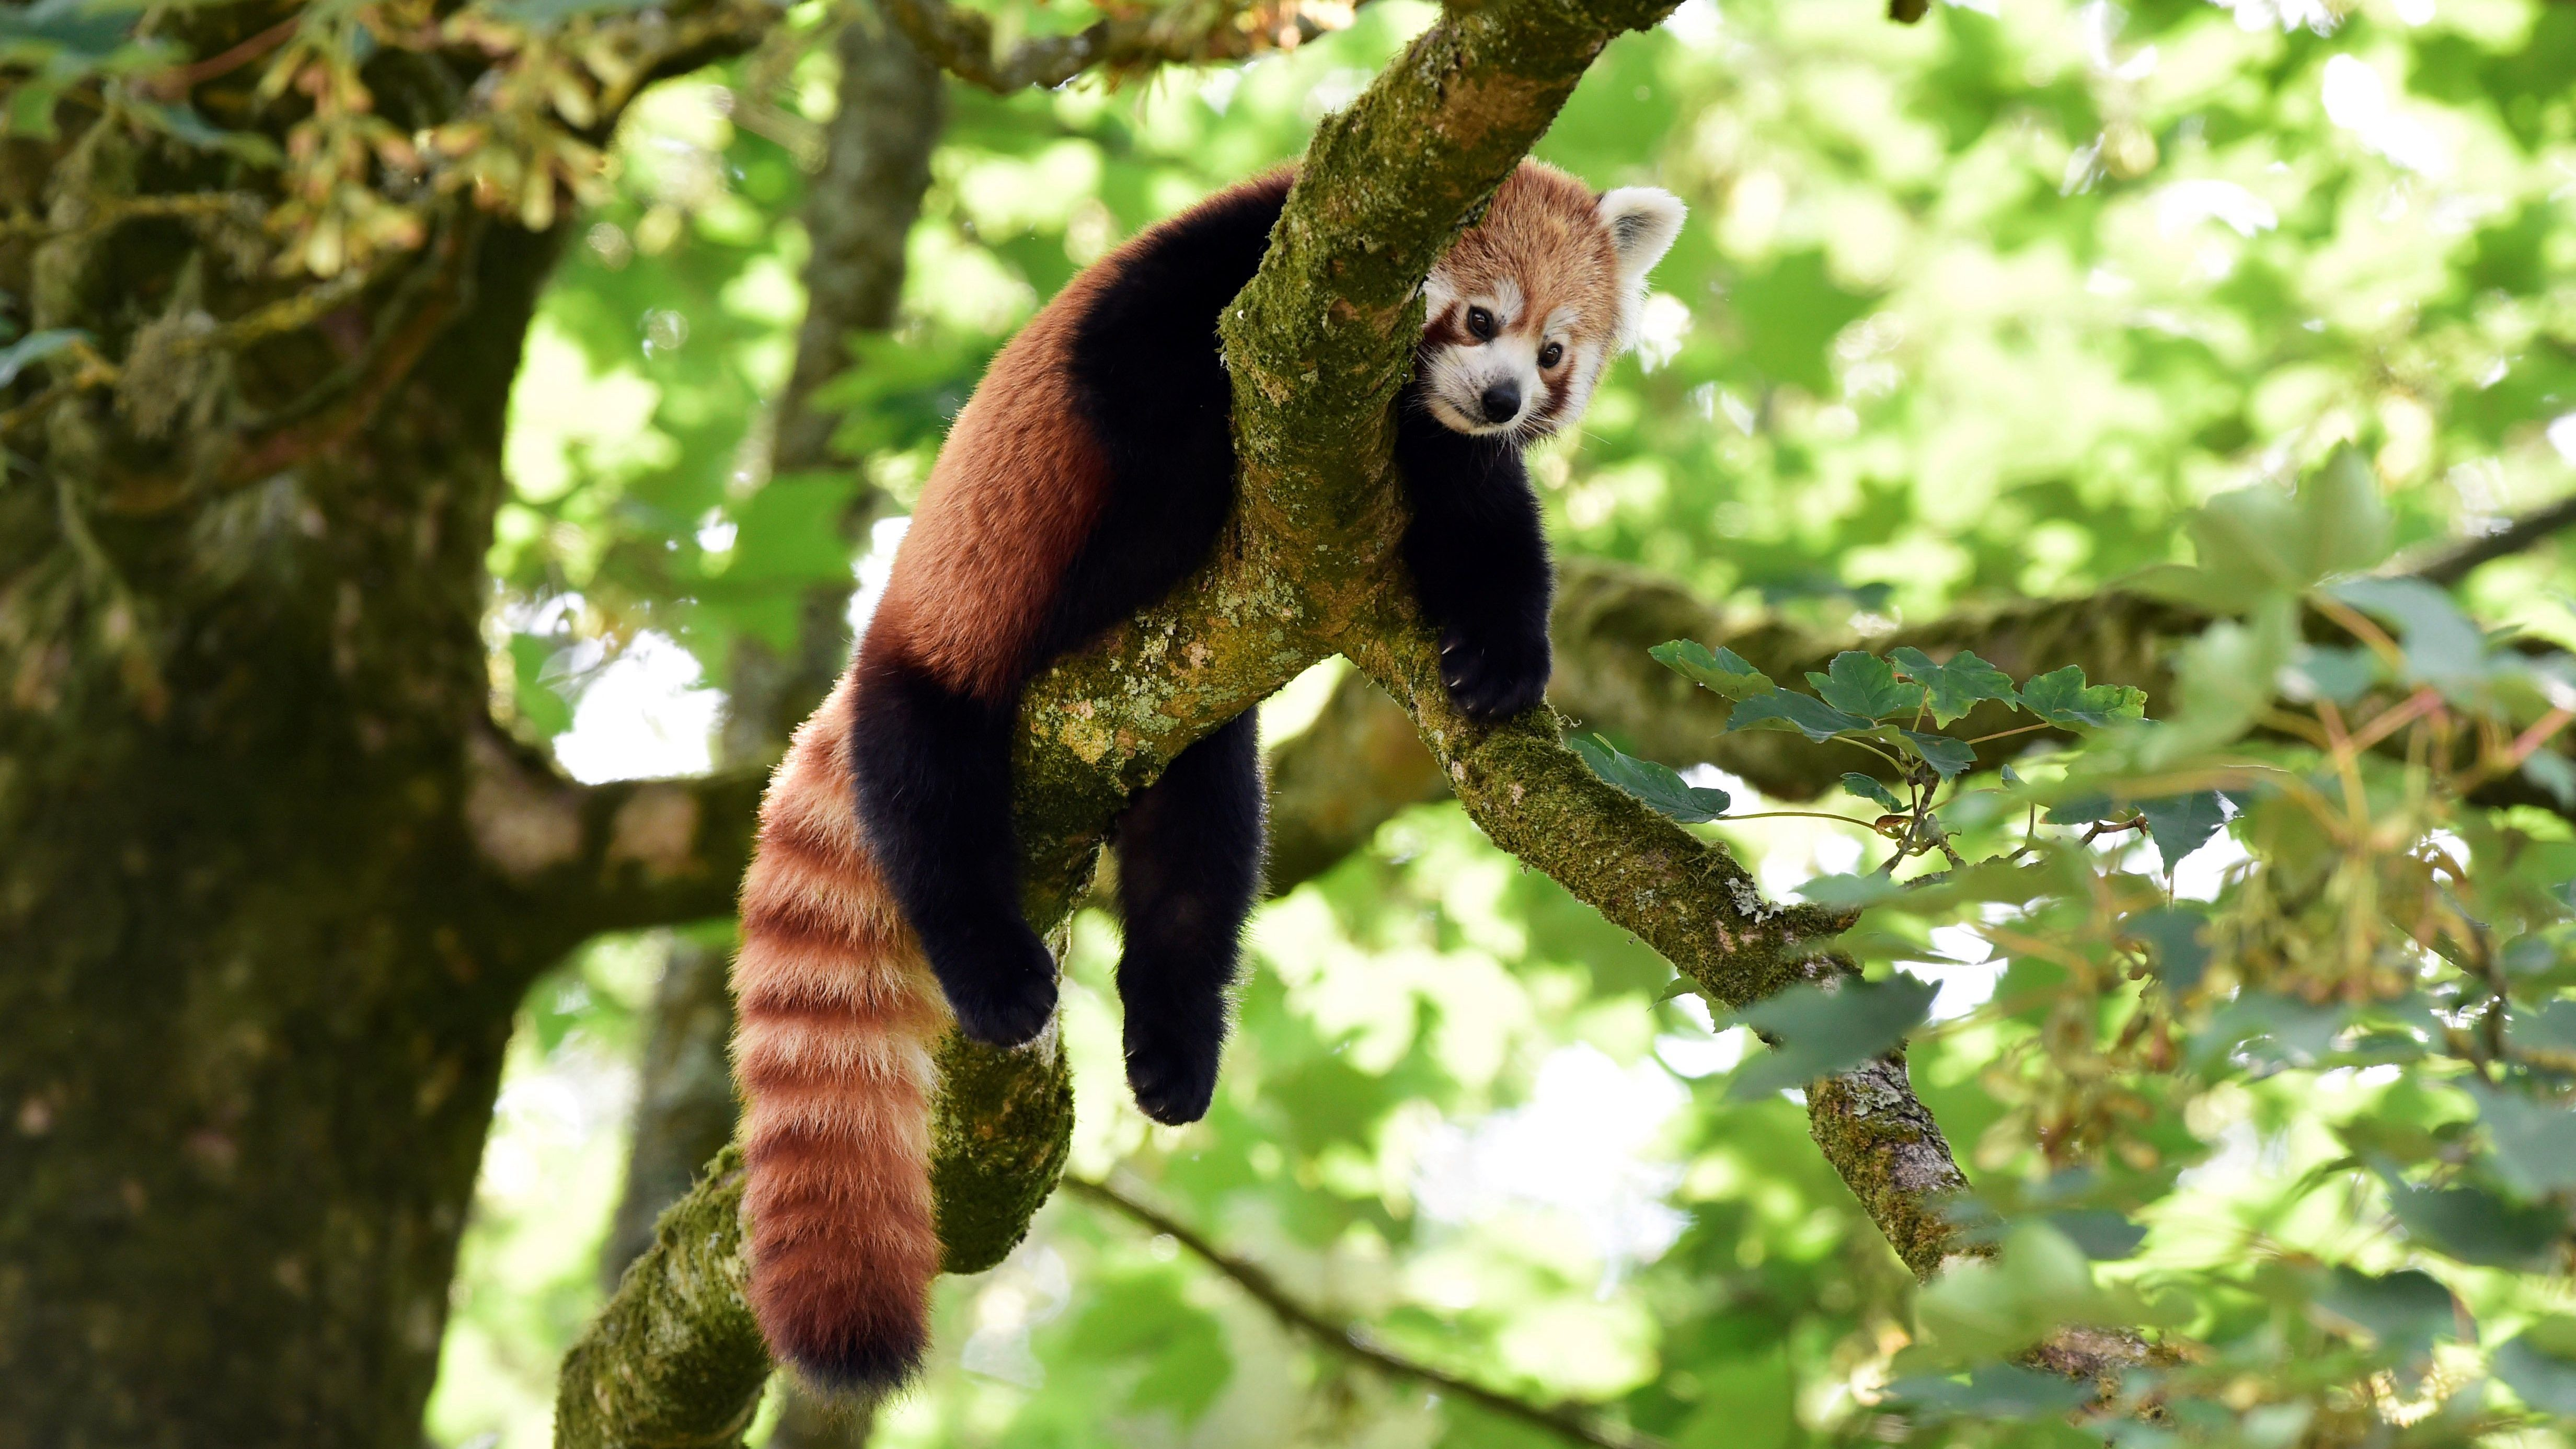 A red panda in a tree looking glum